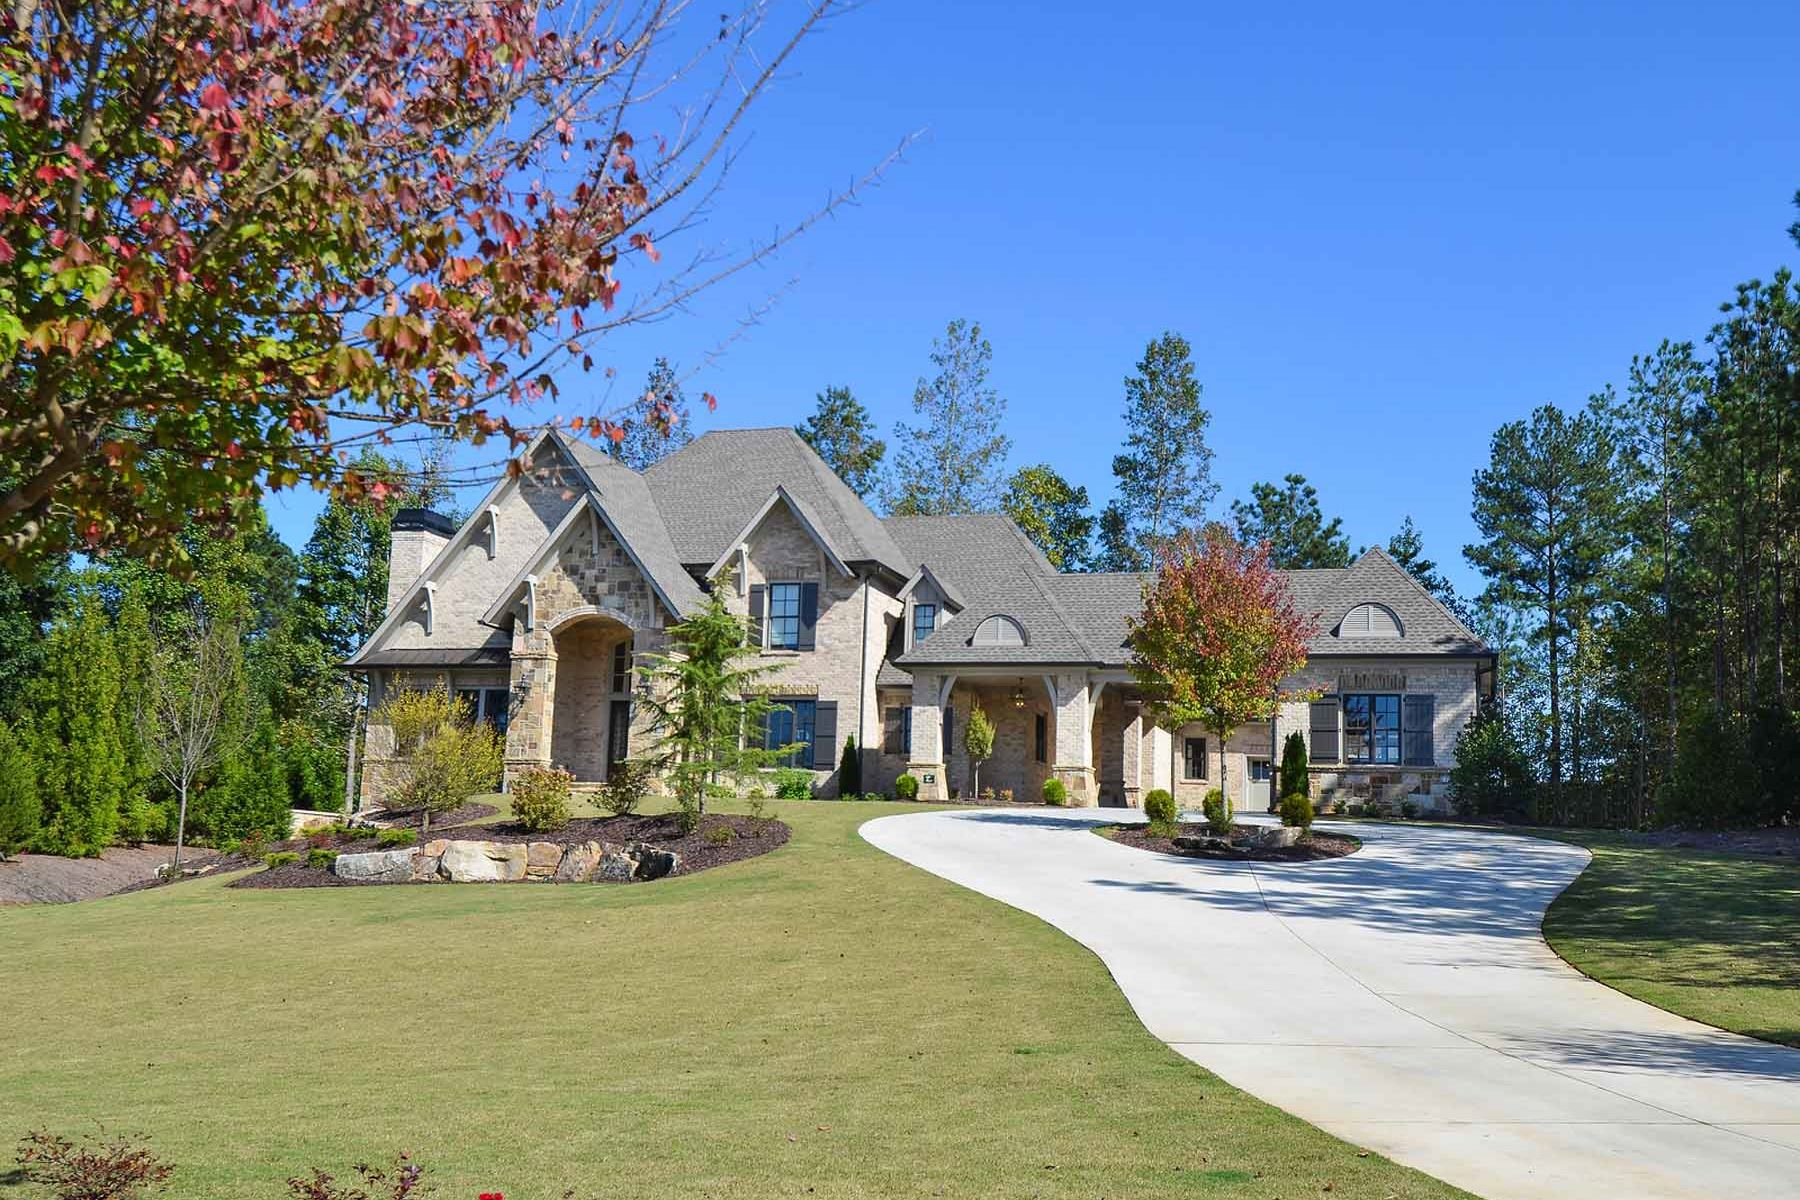 Single Family Home for Sale at Open Plan Estate 705 Balley Forrest Court Milton, Georgia 30004 United States